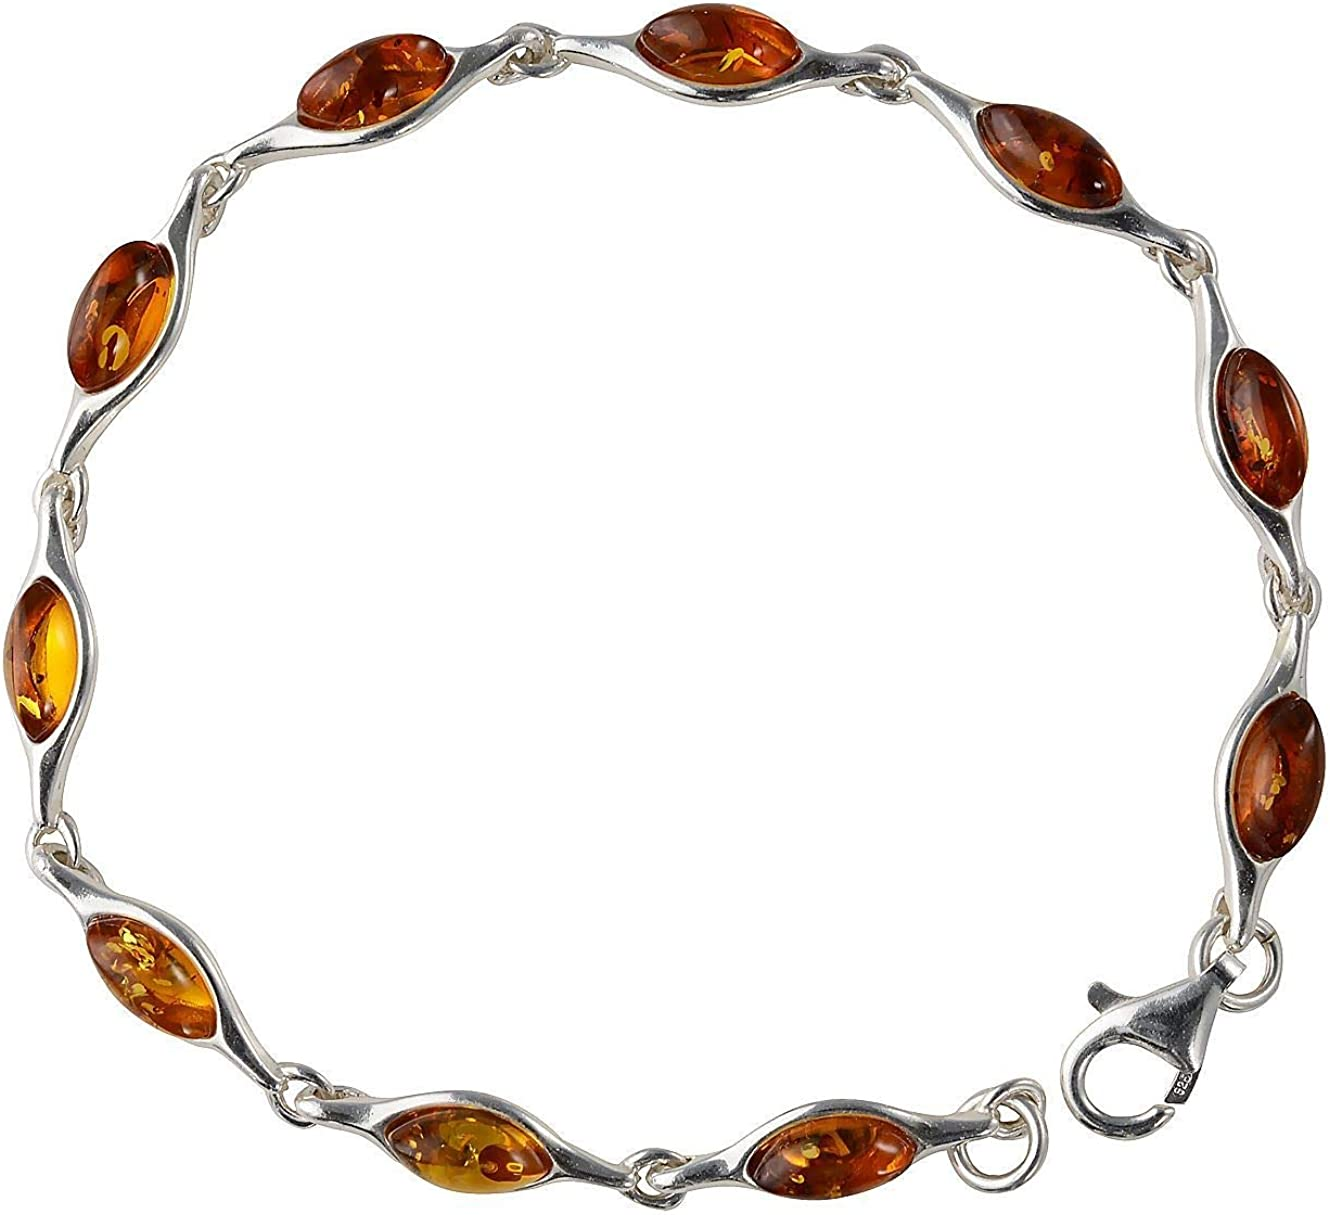 Gift for Mom Bracelet 14K Gold Plated 925 Sterling Silver with Amber inserts Wife Vintage Sister FREE SHIPPING. HandMade